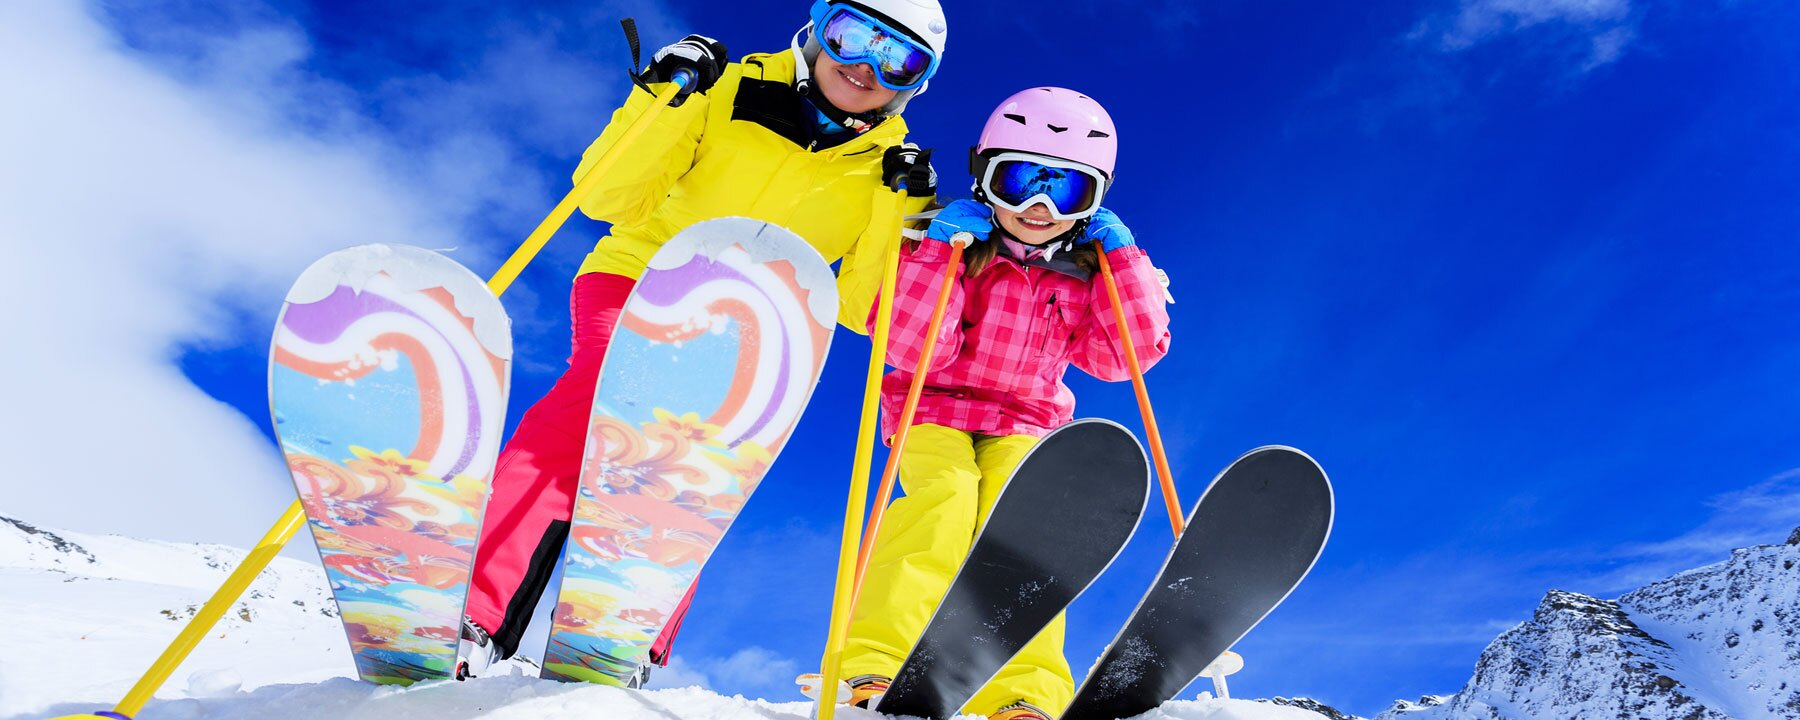 Top 7 Ski Resorts in China